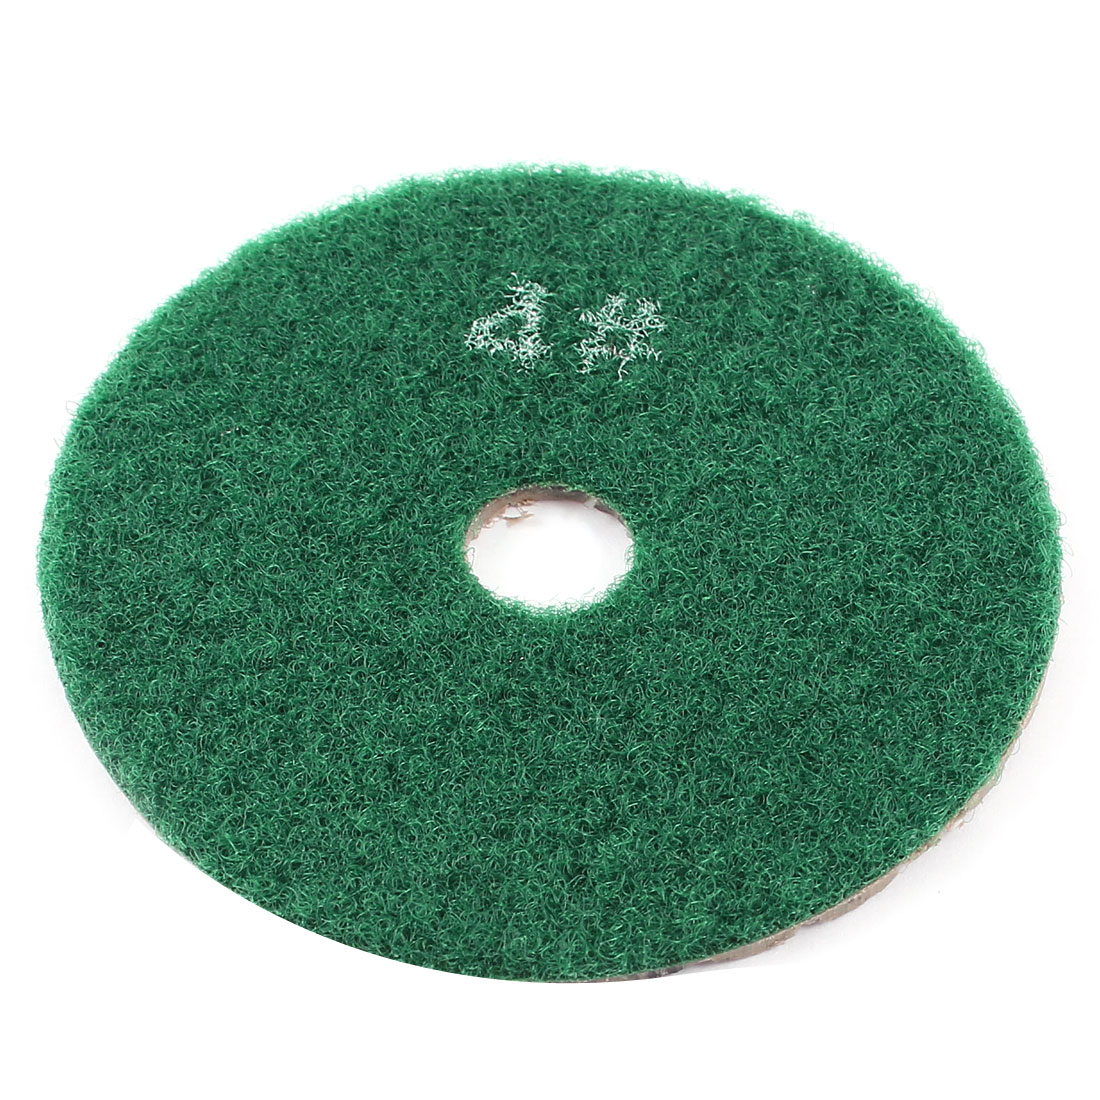 Granite Concrete Wet Dry Diamond Polishing Buffing Pad Disc 1000Grit 3""